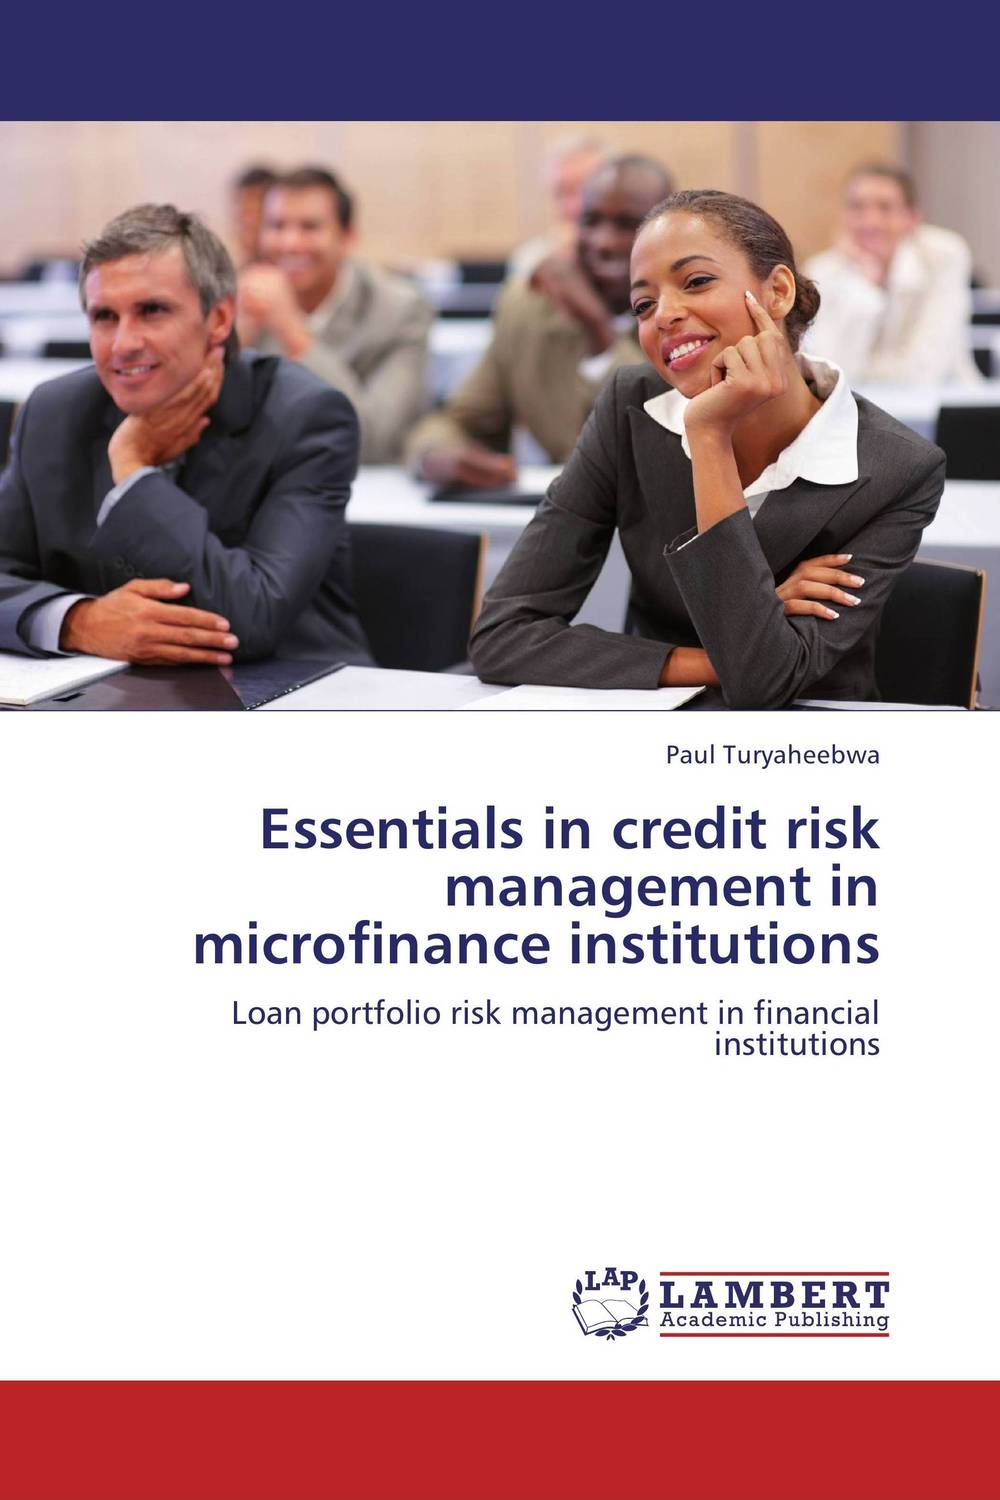 Essentials in credit risk management in microfinance institutions kenji imai advanced financial risk management tools and techniques for integrated credit risk and interest rate risk management